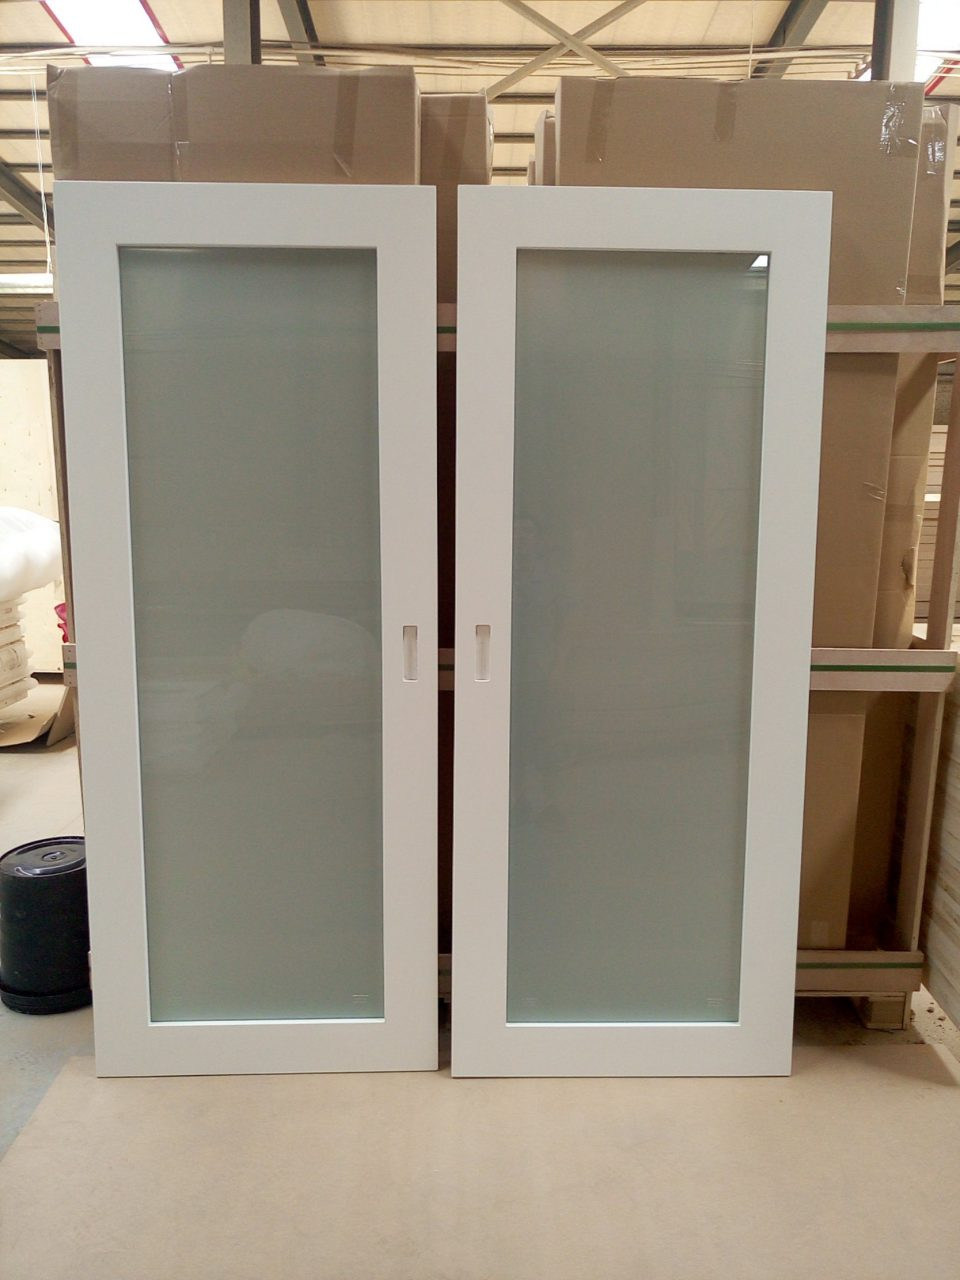 China Marriott White Painted Laminated Glass Sliding Barn Door Style